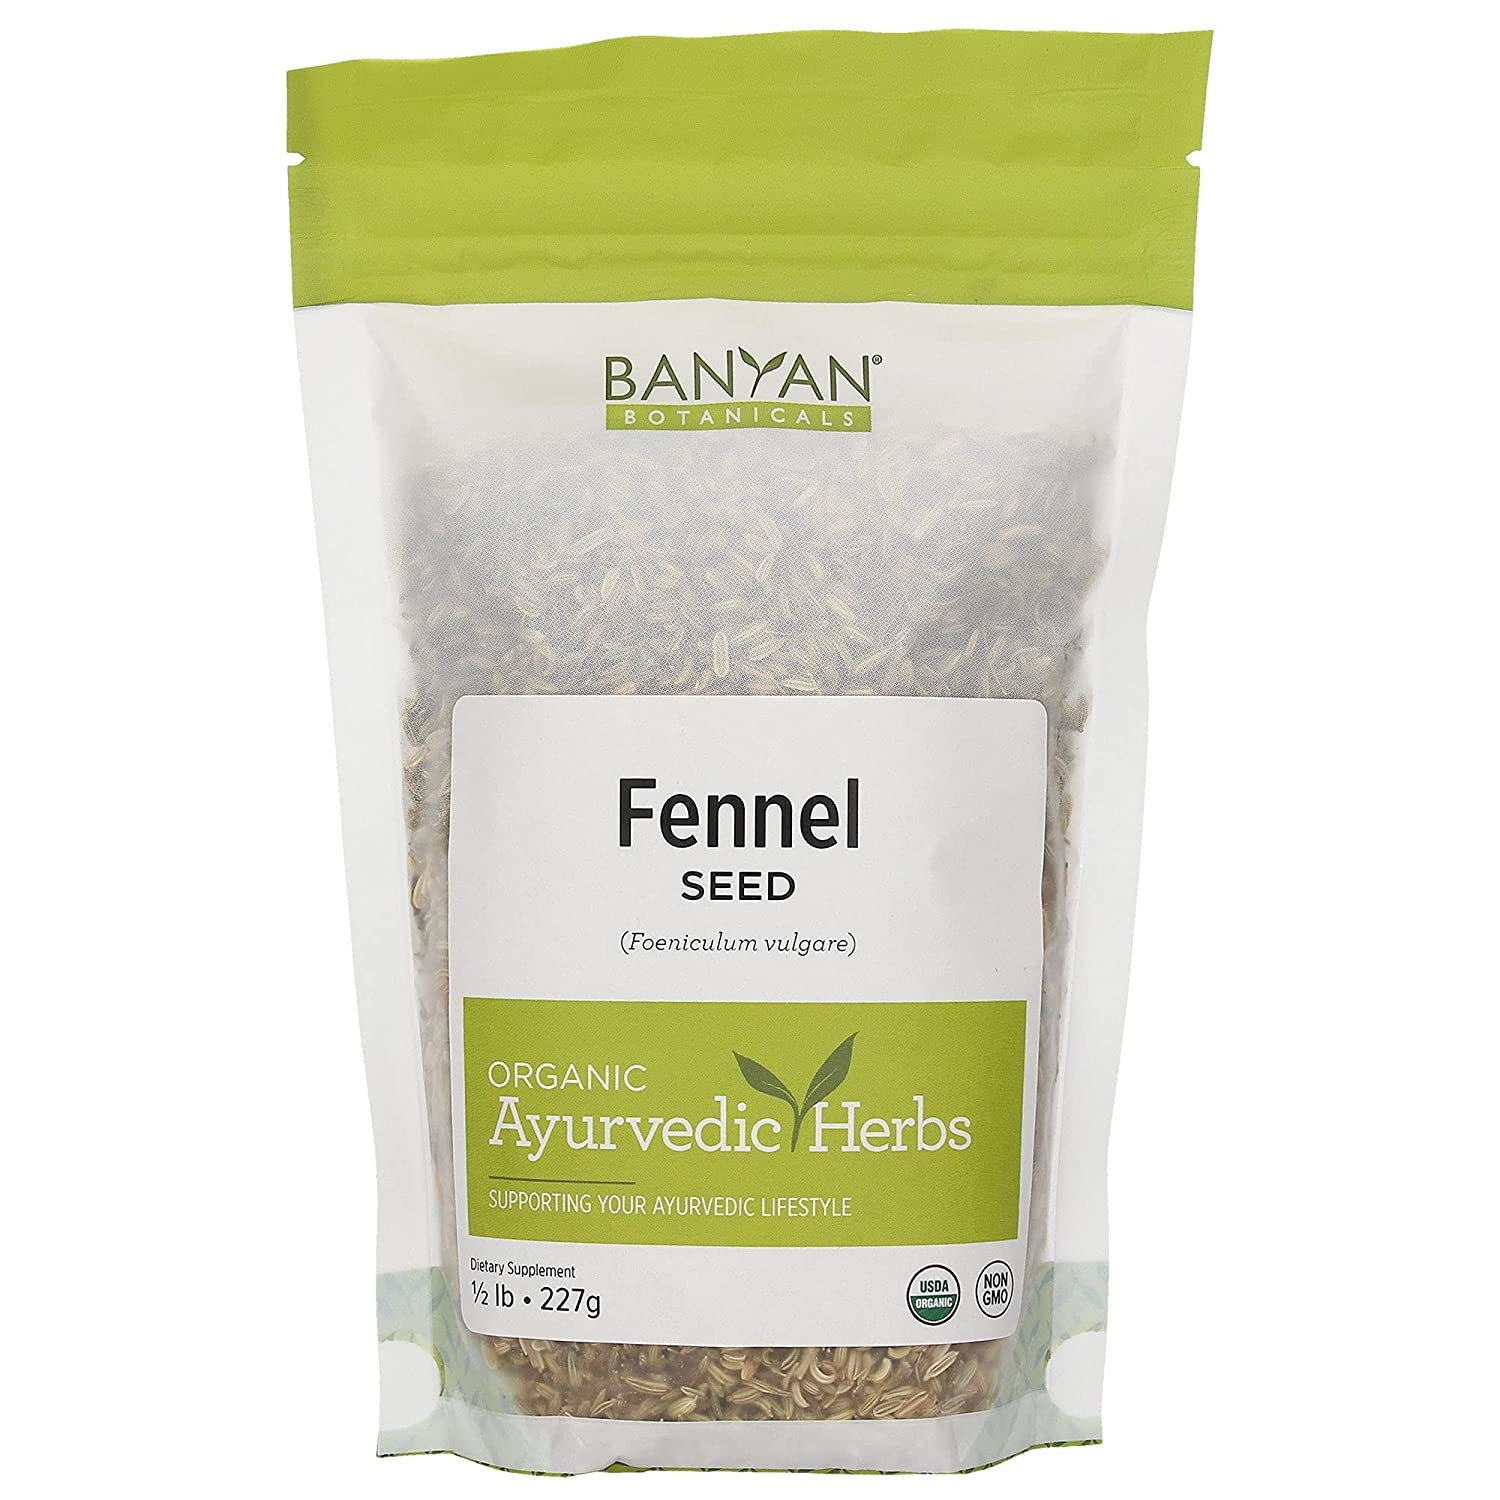 Banyan Botanicals Whole Fennel Seed - USDA Organic, 1/2 lb - Foeniculum vulgare - Spice & Herbal Supplement for Digestive Comfort*